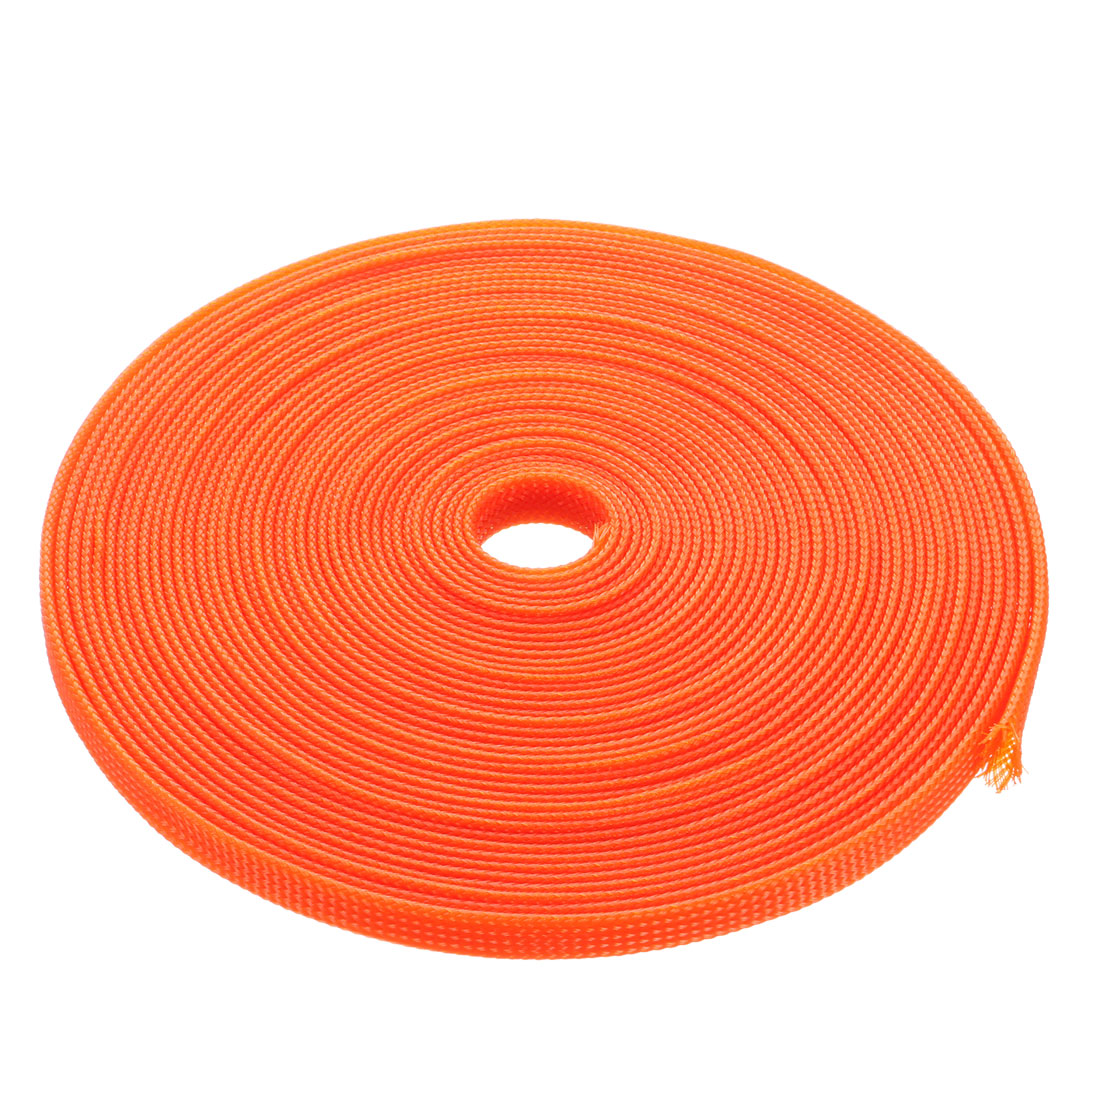 6mm Dia Tight Braided PET Expandable Sleeving Cable Wrap Sheath Orange 32Ft